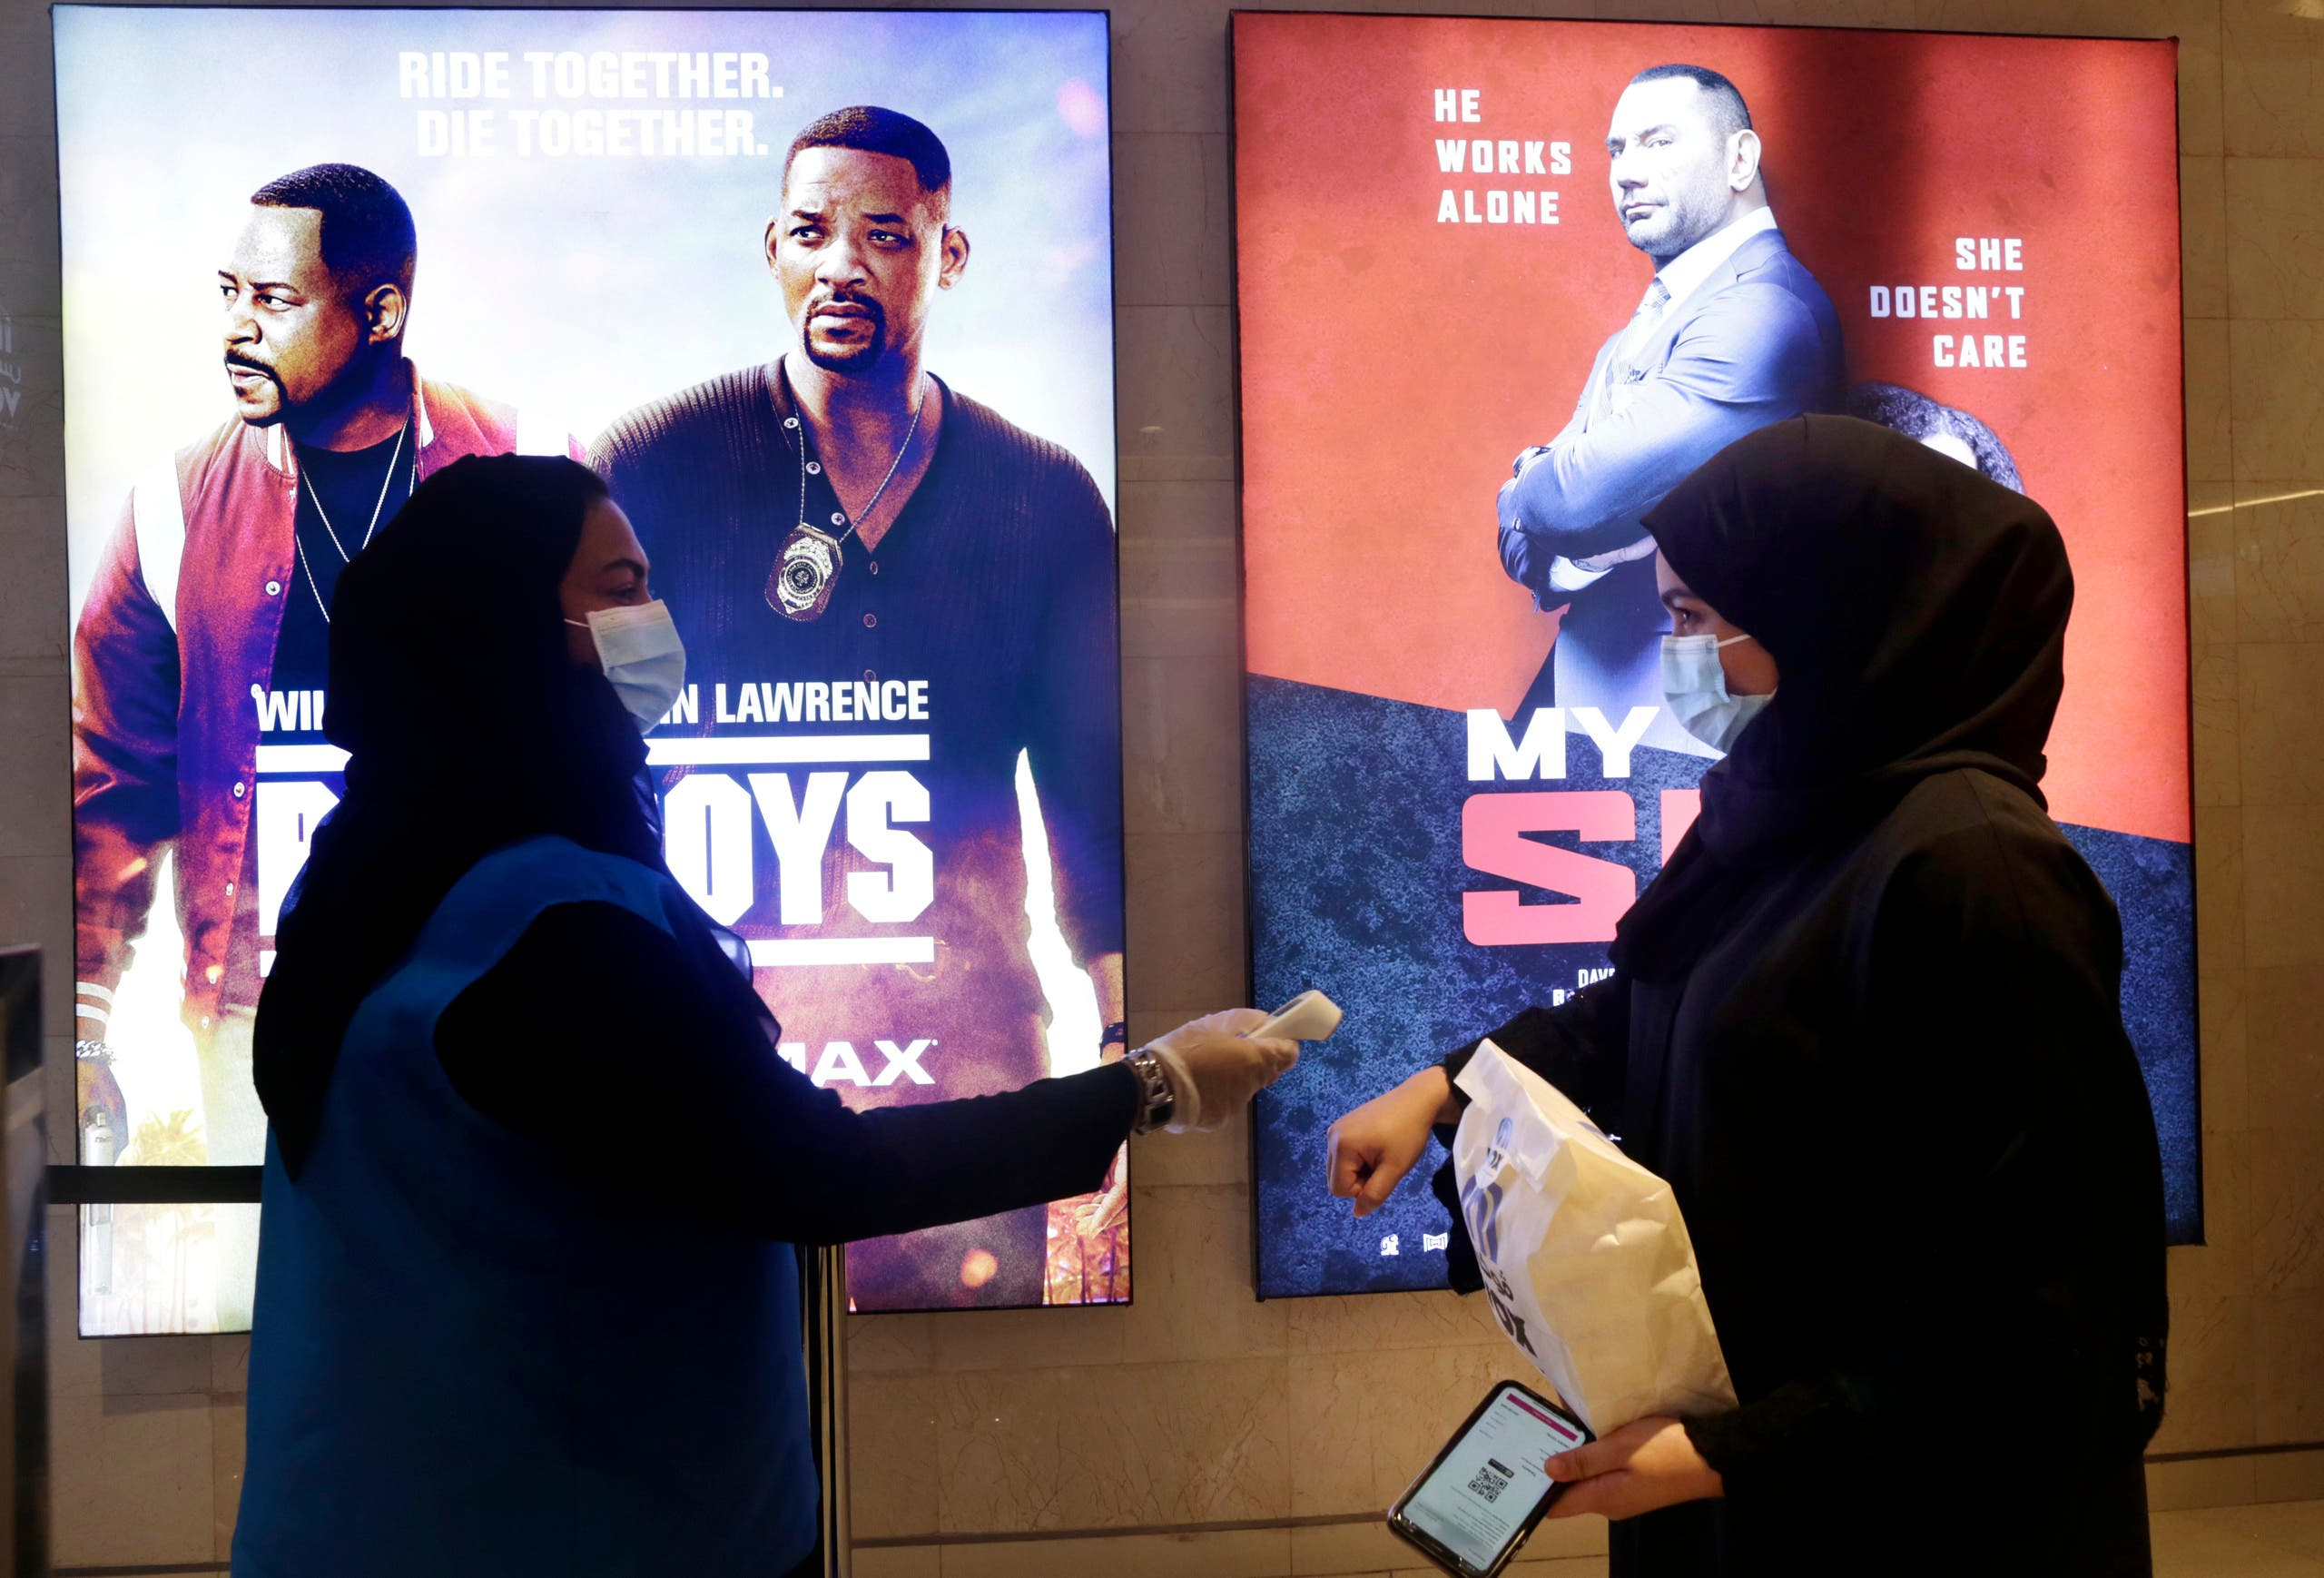 A Saudi movie viewer has her temperature taken as she wears a face mask to help curb the spread of the coronavirus, at VOX Cinema hall in Jiddah, Saudi Arabia, Friday, June 26, 2020, after the announcement of easing of lockdown measures amid the coronavirus outbreak. (AP Photo/Amr Nabil)